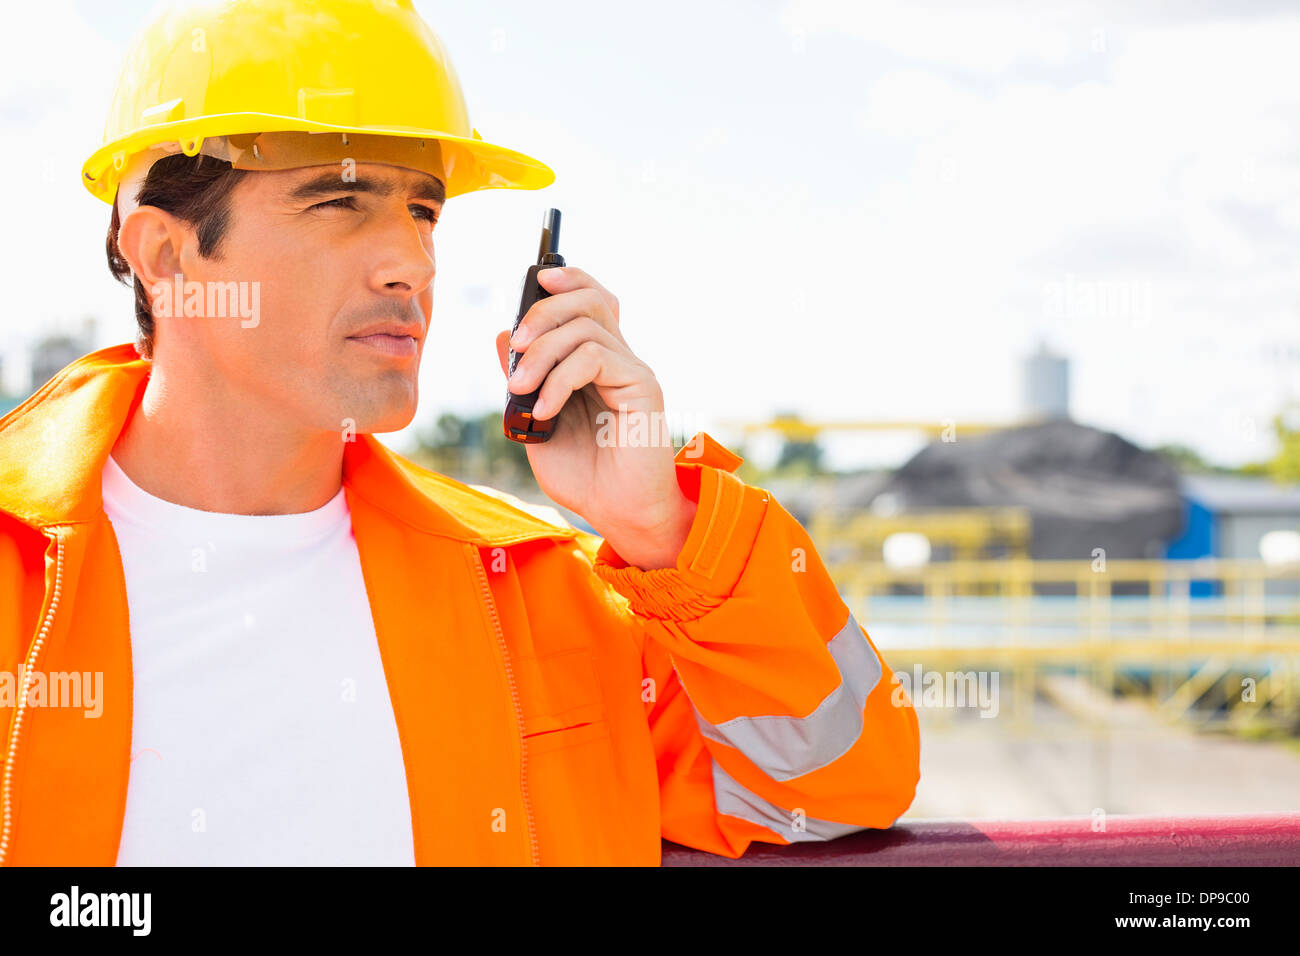 Male construction worker communicating on walkie-talkie at site - Stock Image